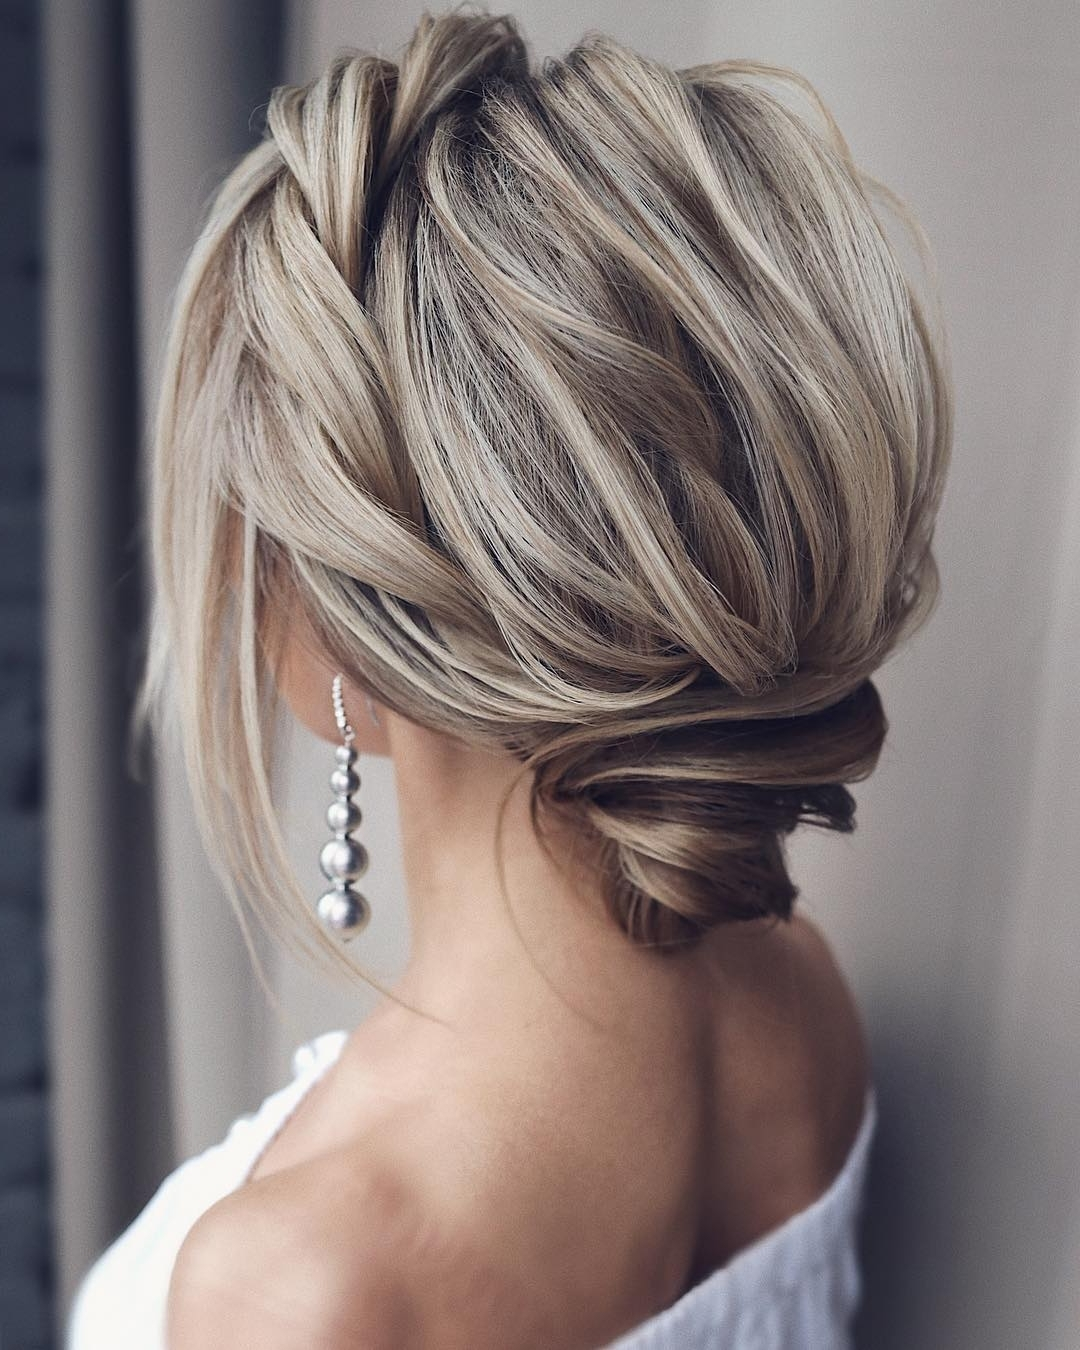 10 Updos For Medium Length Hair Prom & Homecoming Medium Hairstyles For Homecoming